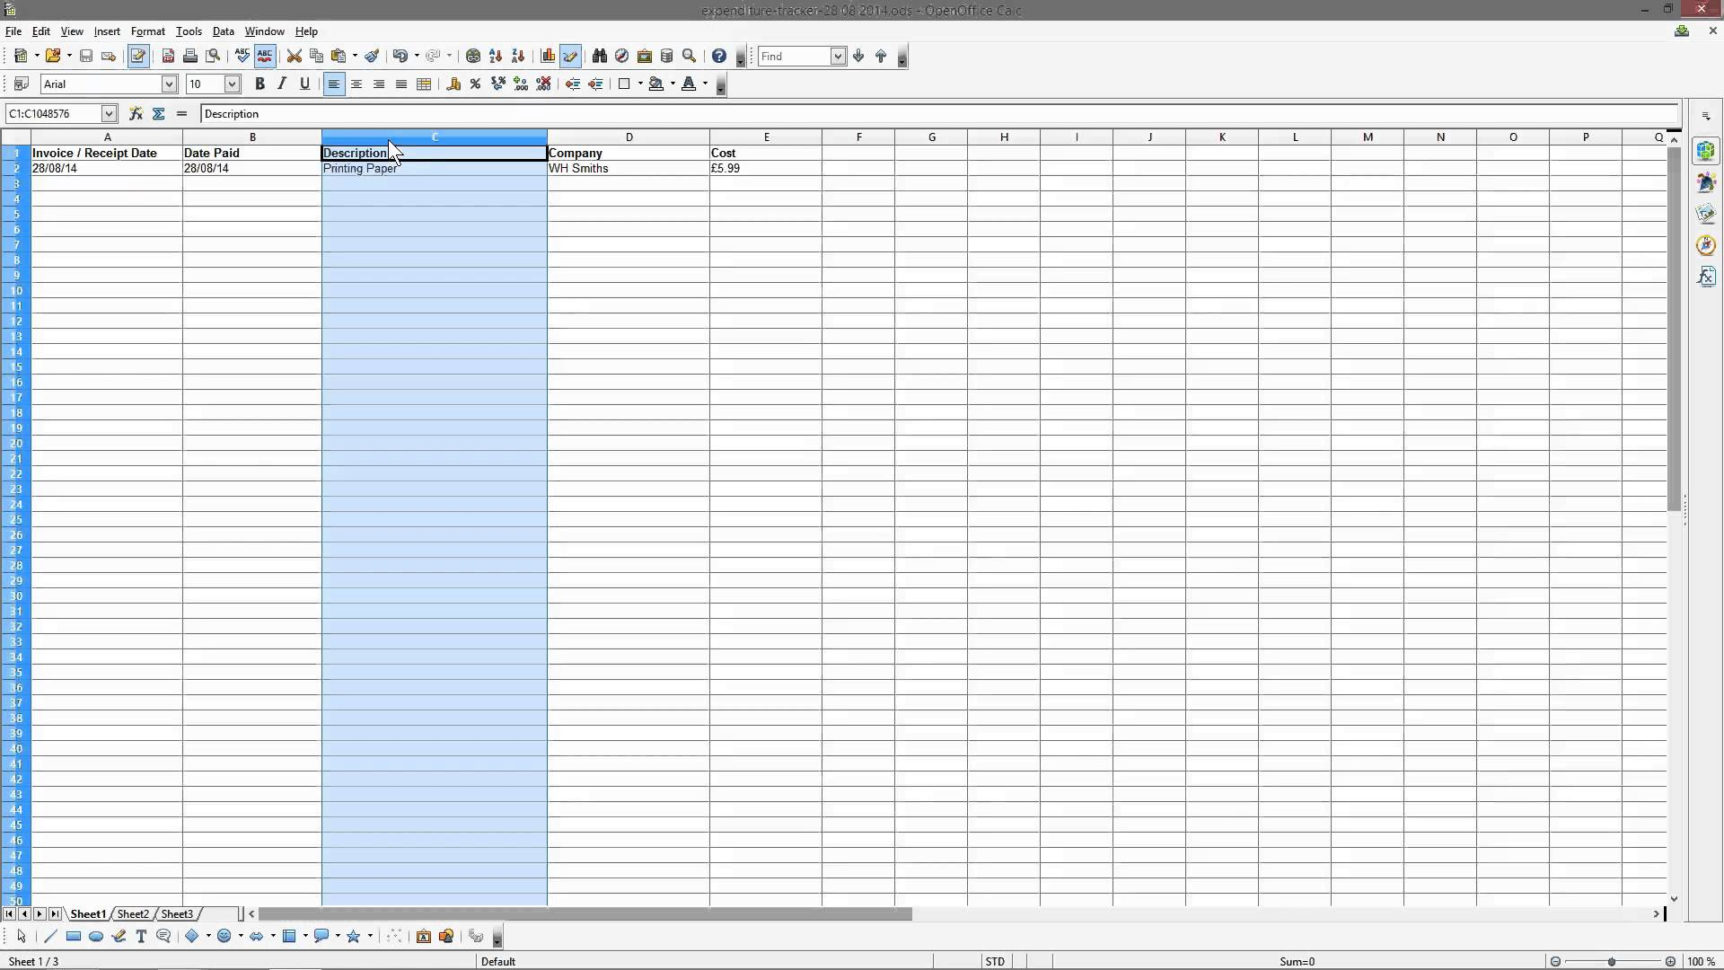 Daily Expense Spreadsheet Template For Excel Spreadsheet To Track Daily Expenses Templates For Free Expense